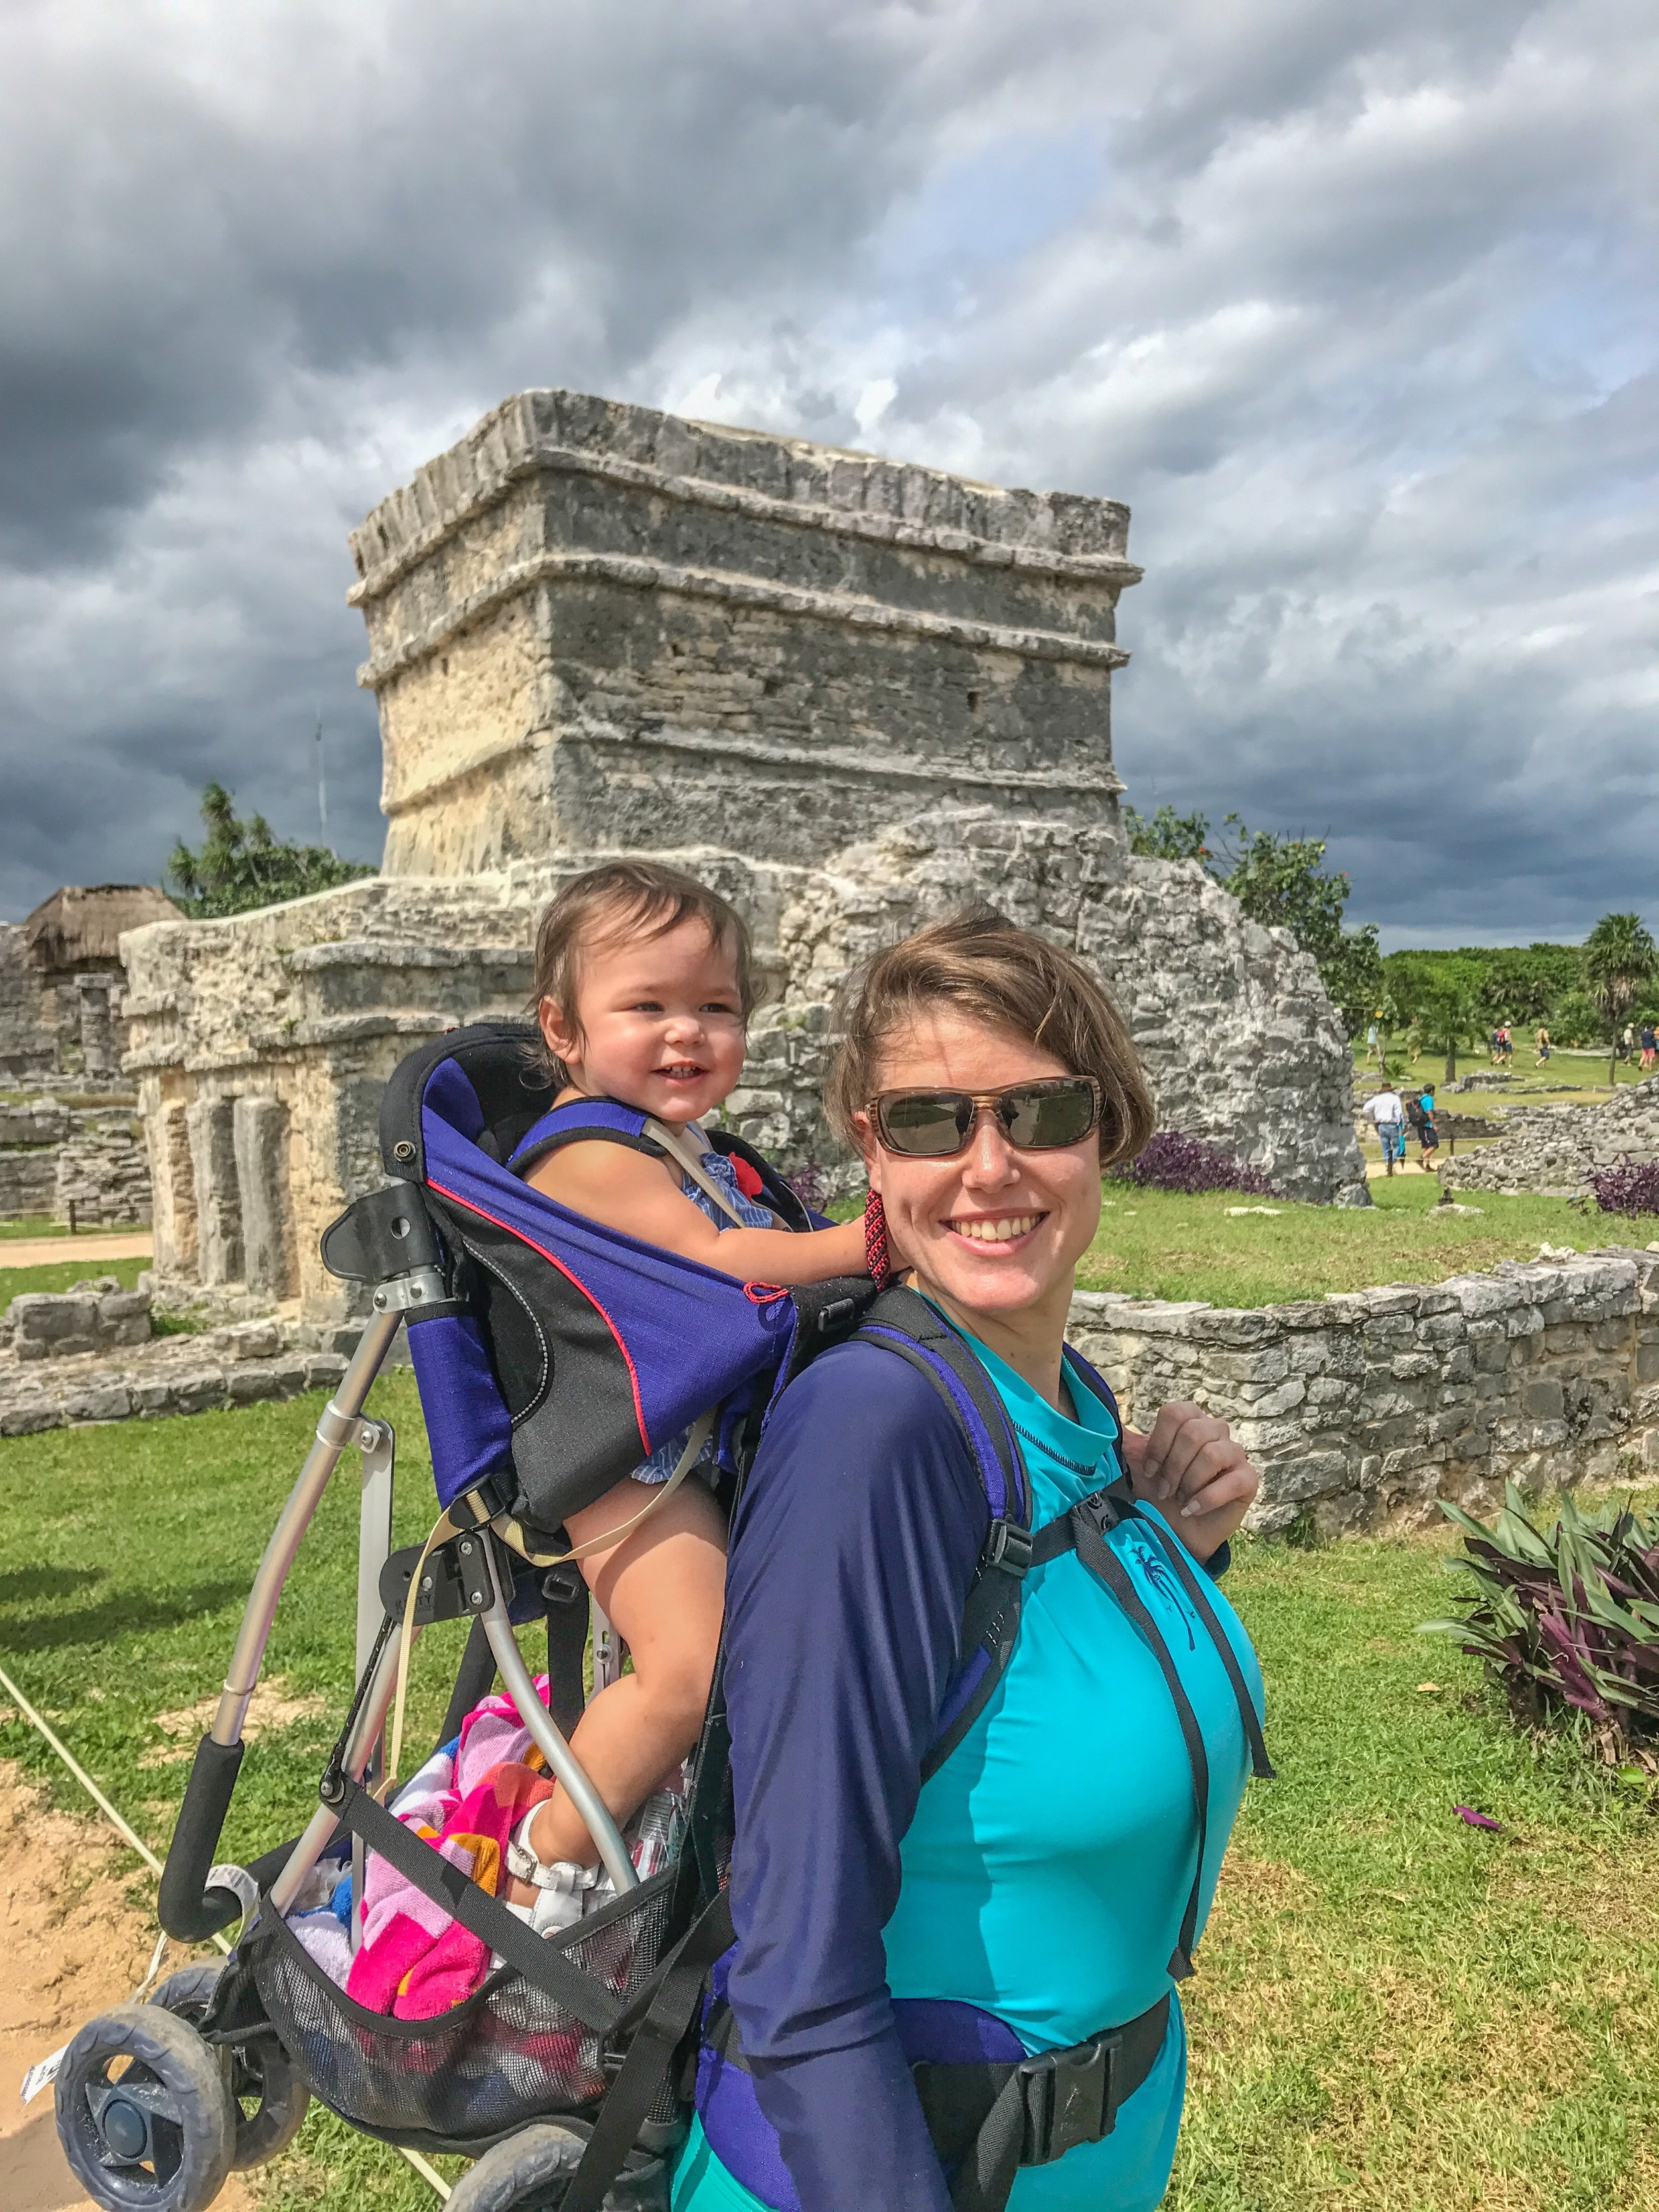 My niece is happy we have travel insurance while hiking through Tulum, Mexico